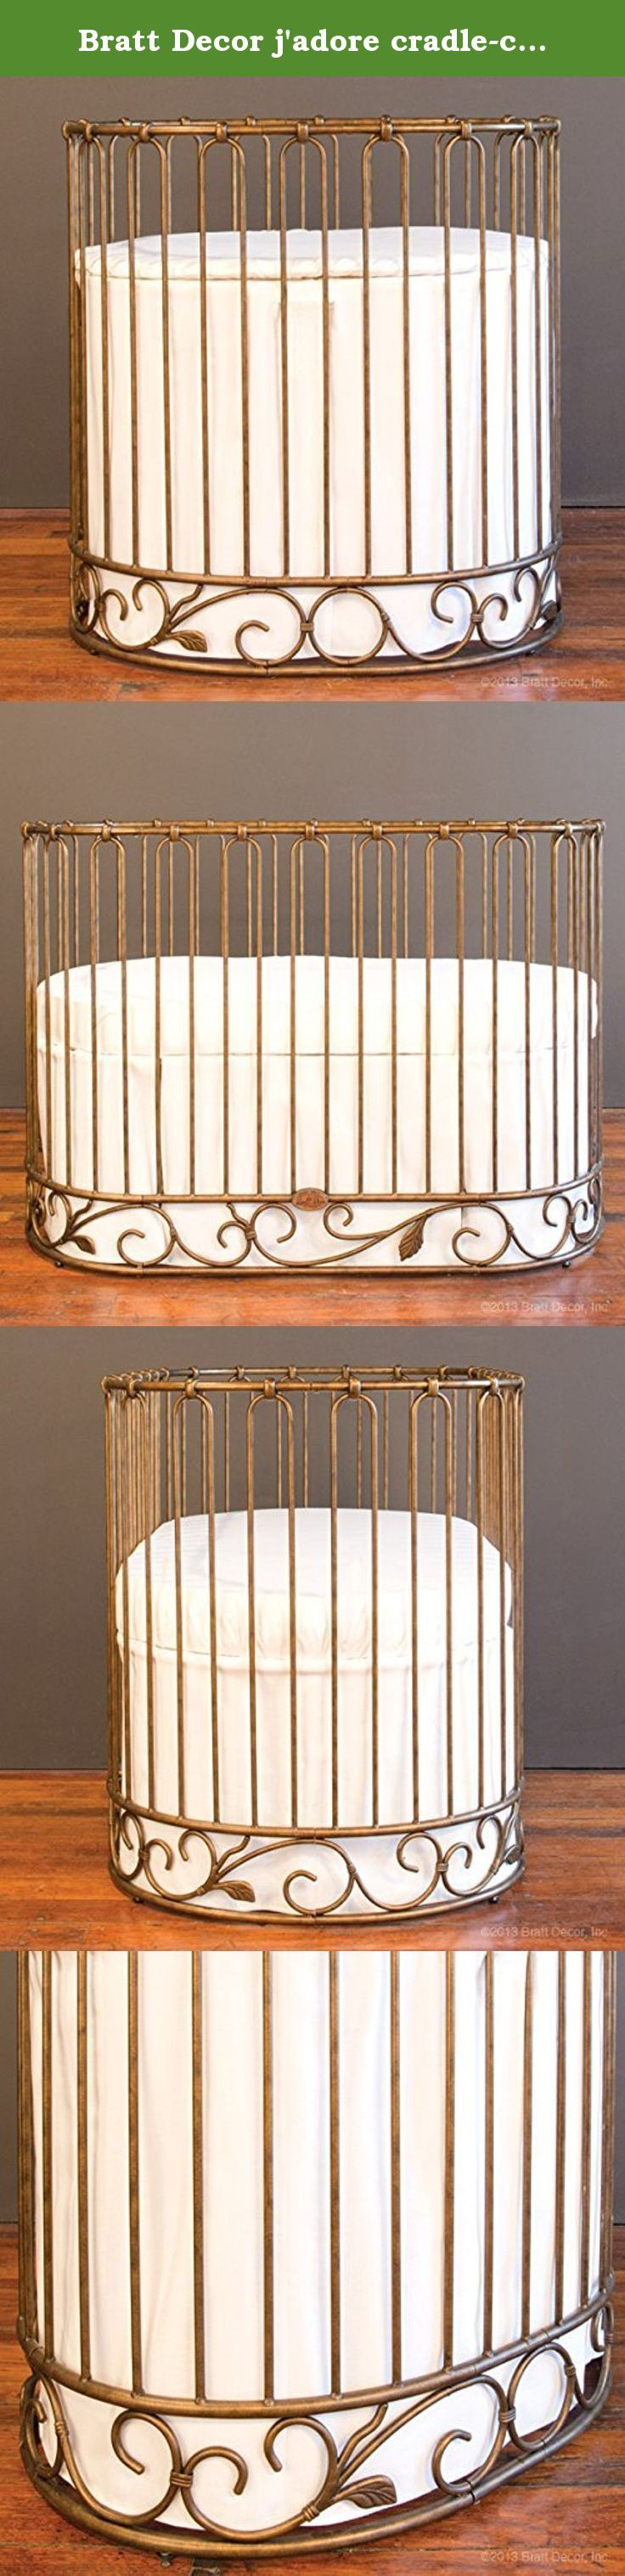 Bratt Decor j'adore cradle-crib vintage gold. The J'adore is heirloom iron luxury at its best, and it's so much more than just a crib. It is a round nursery sleep system that is actually 3 beds in 1. The first bed your newborn will use, a sophisticated cradle, turns into a beautiful crib and then an elegant daybed. Bratt Decor's round sleep systems combine brilliant design with luxury styling to keep your baby surrounded in style and sophistication from birth throughout the toddler years....